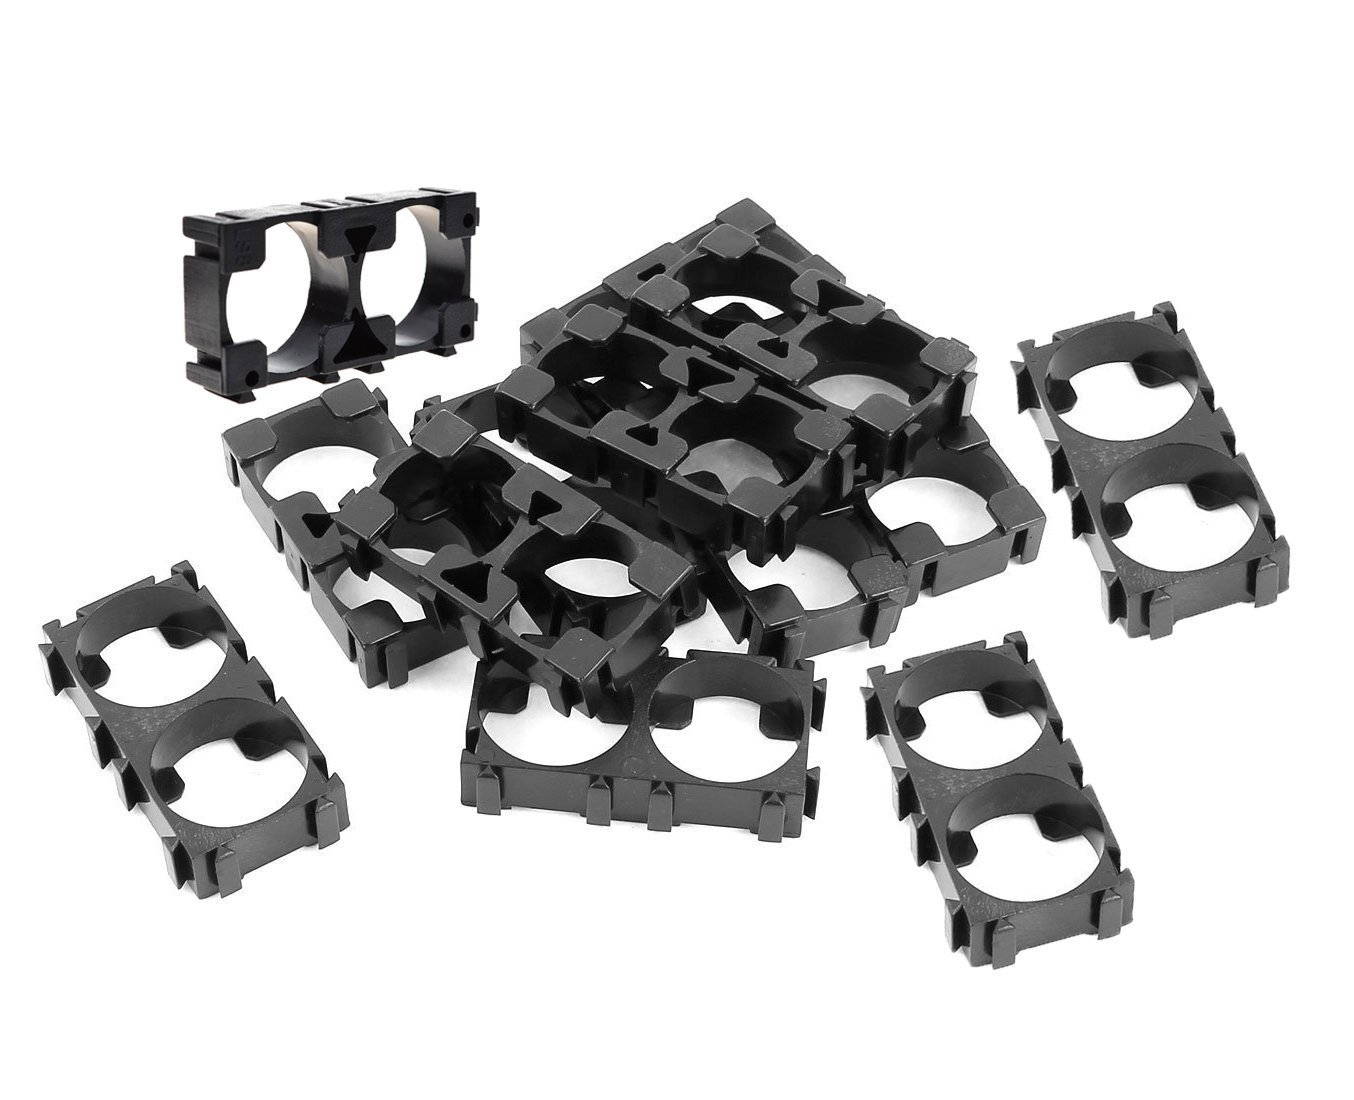 YXQ 100Pcs 18650 Battery Holder 2 Cell Spacer Single Bracket Storage Box Protection Board Lithium for DIY Battery Pack